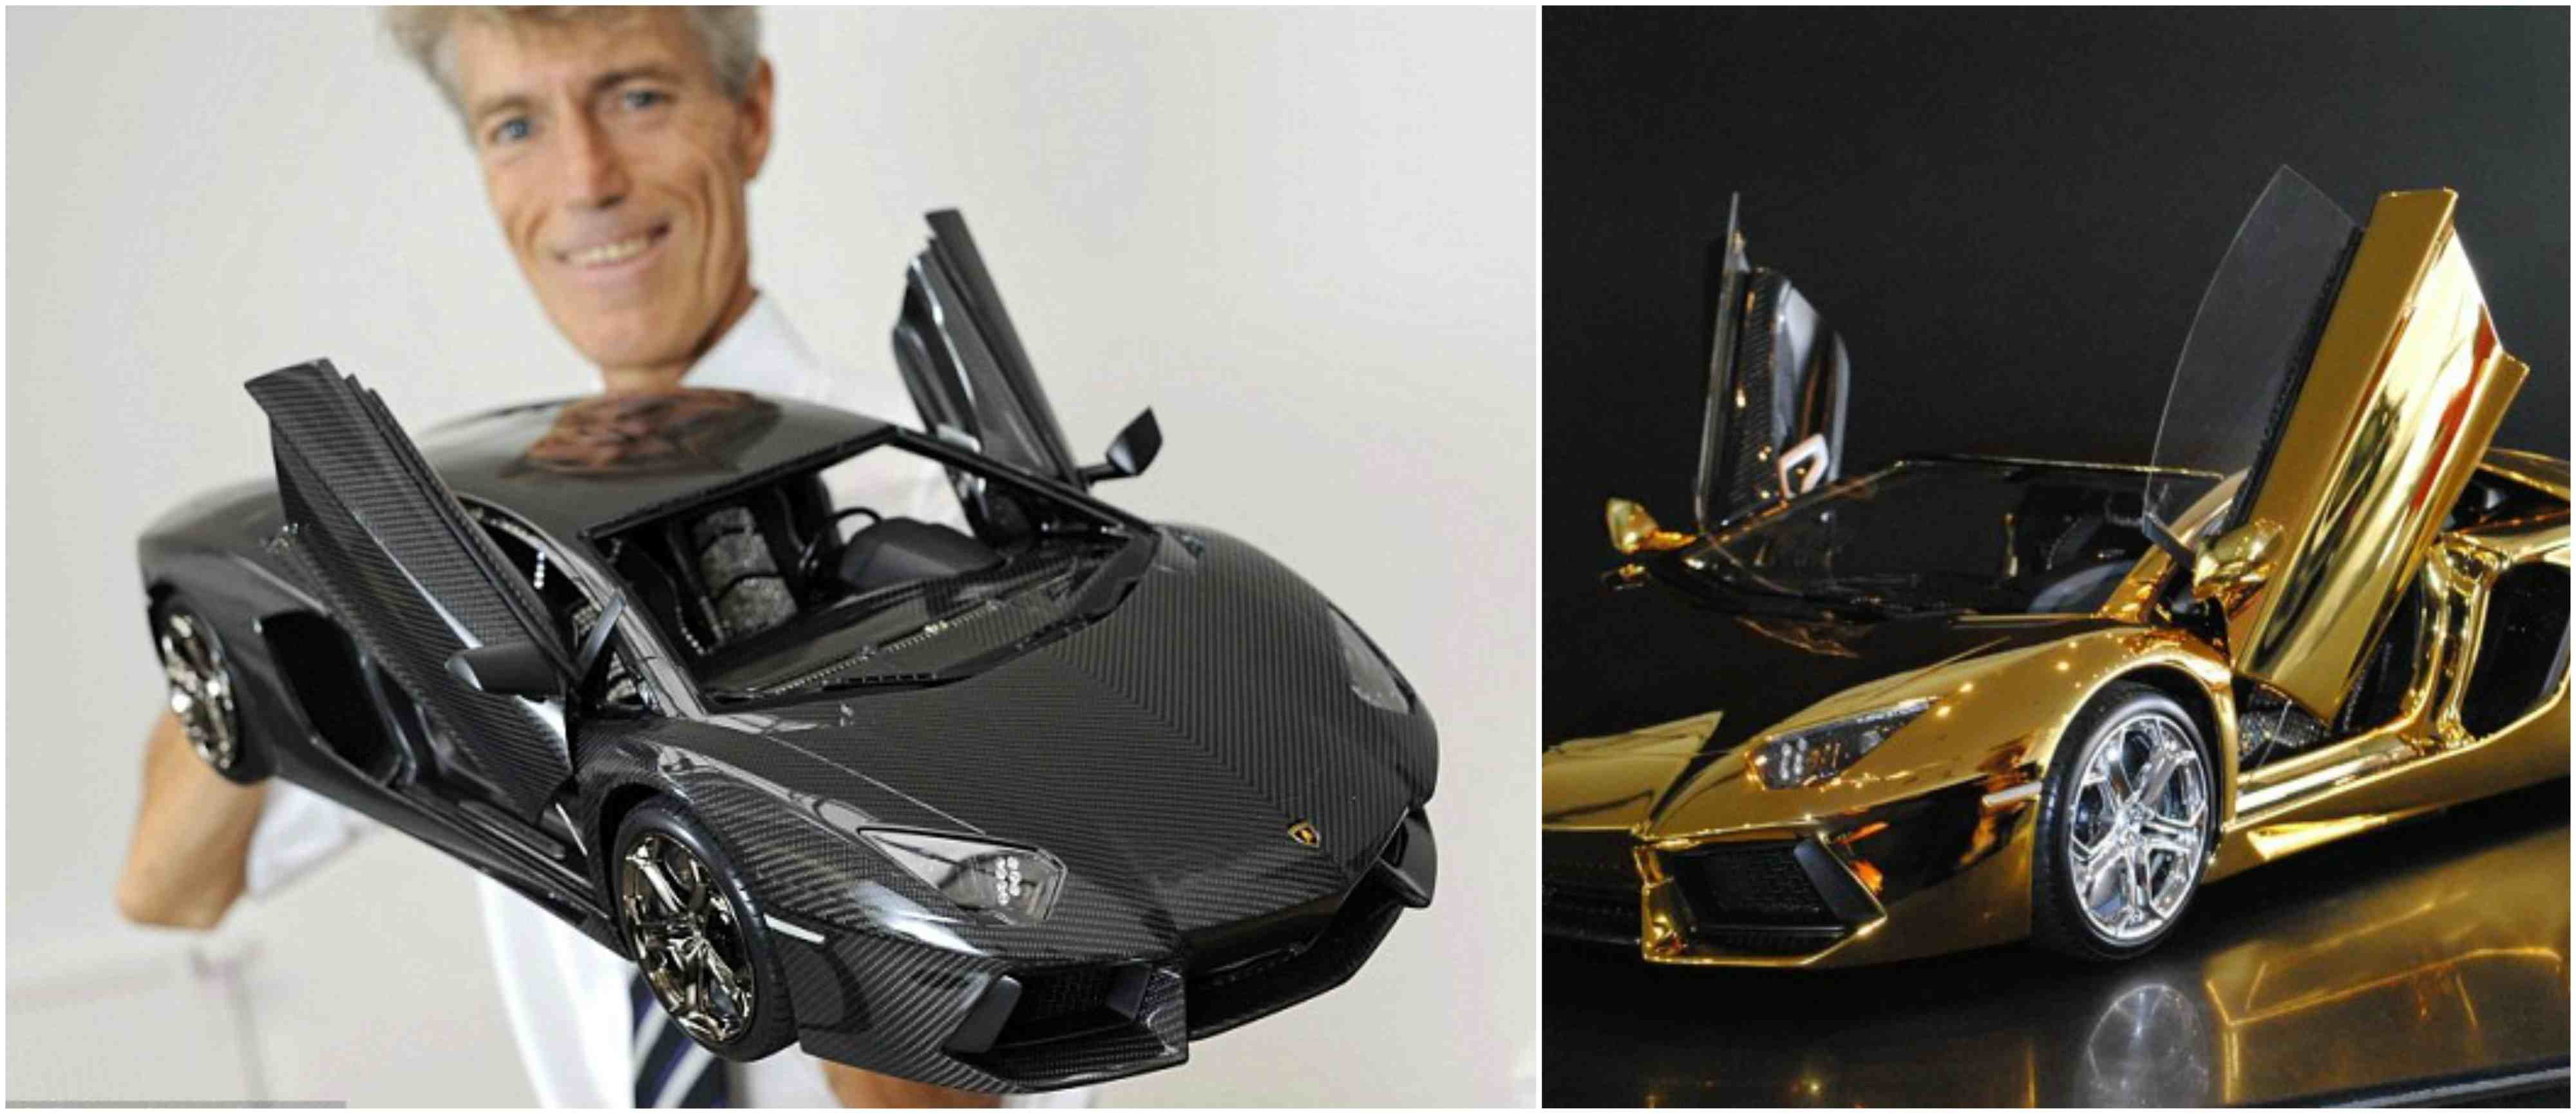 Coolest Toy In The World : Top most expensive toys in the world s